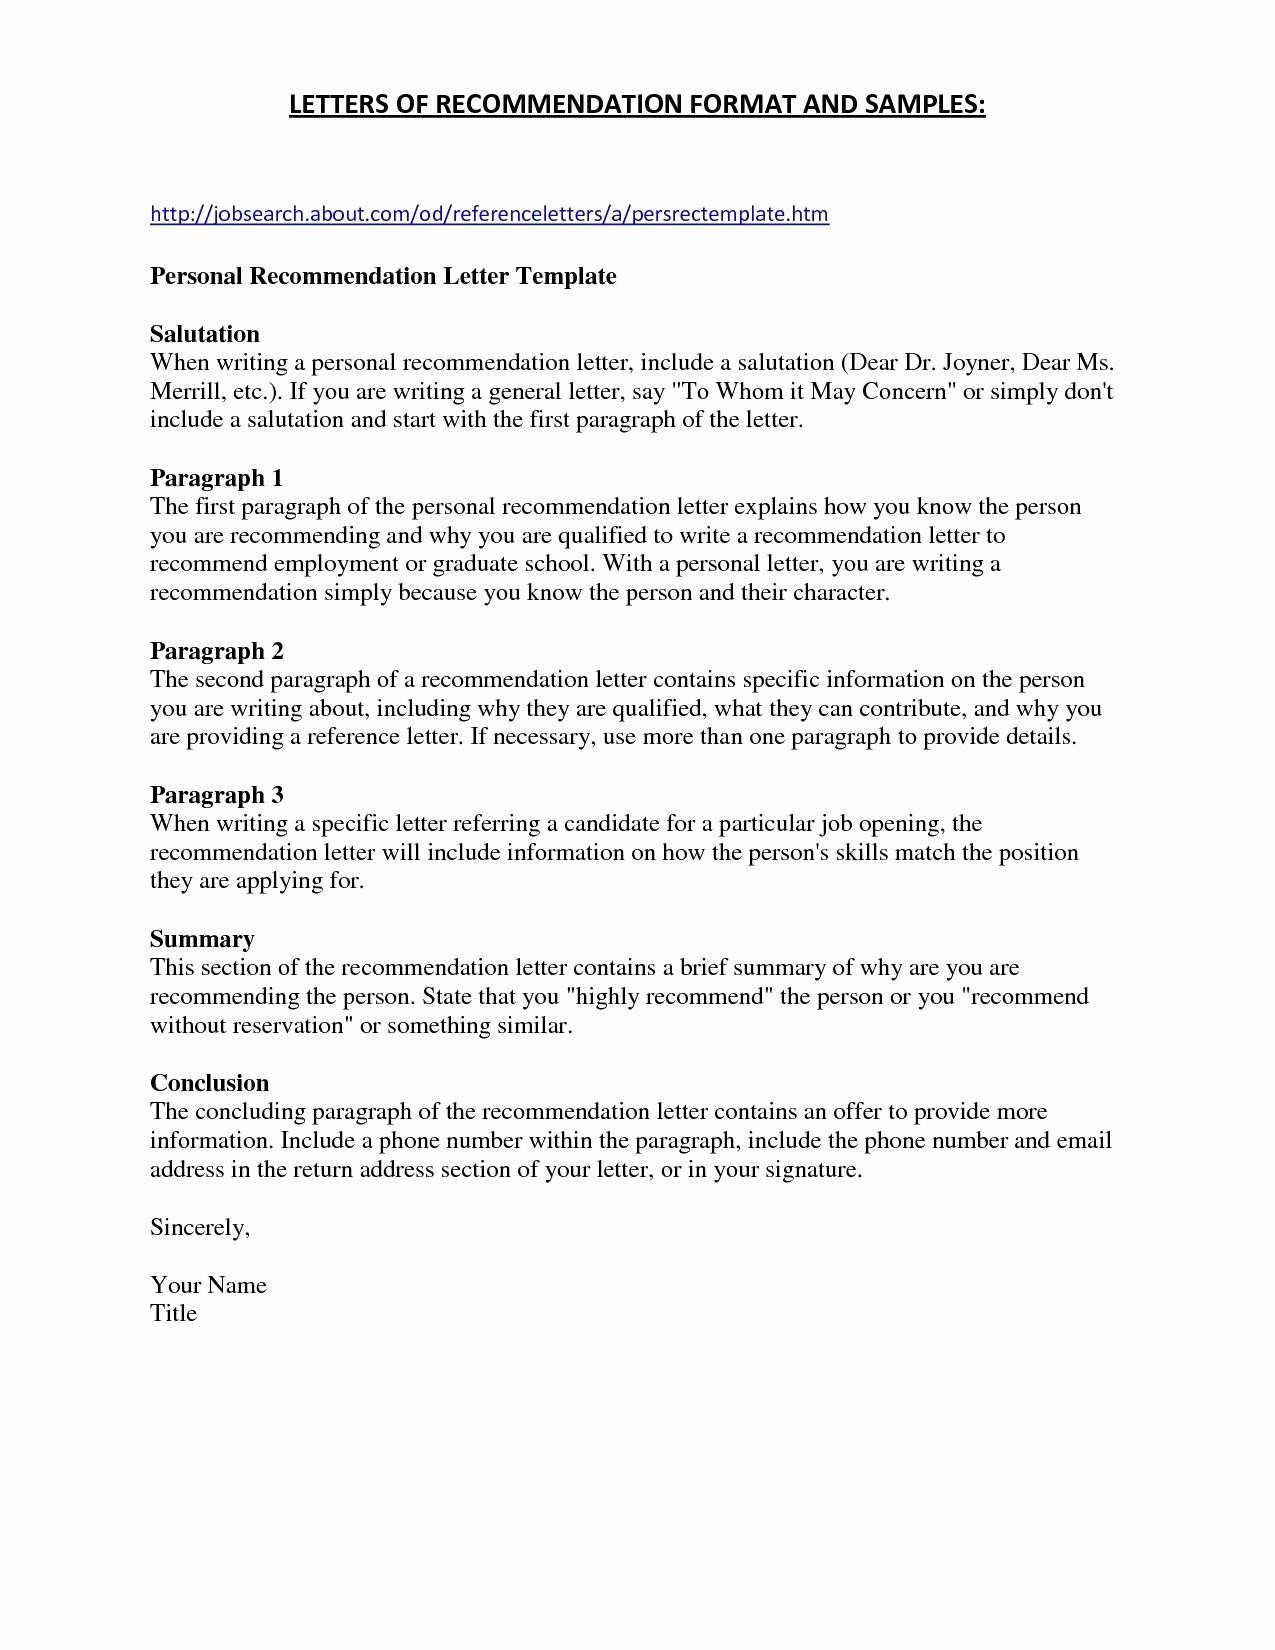 Medical Office Manager Resume Samples - Medical Fice Manager Resume Sample